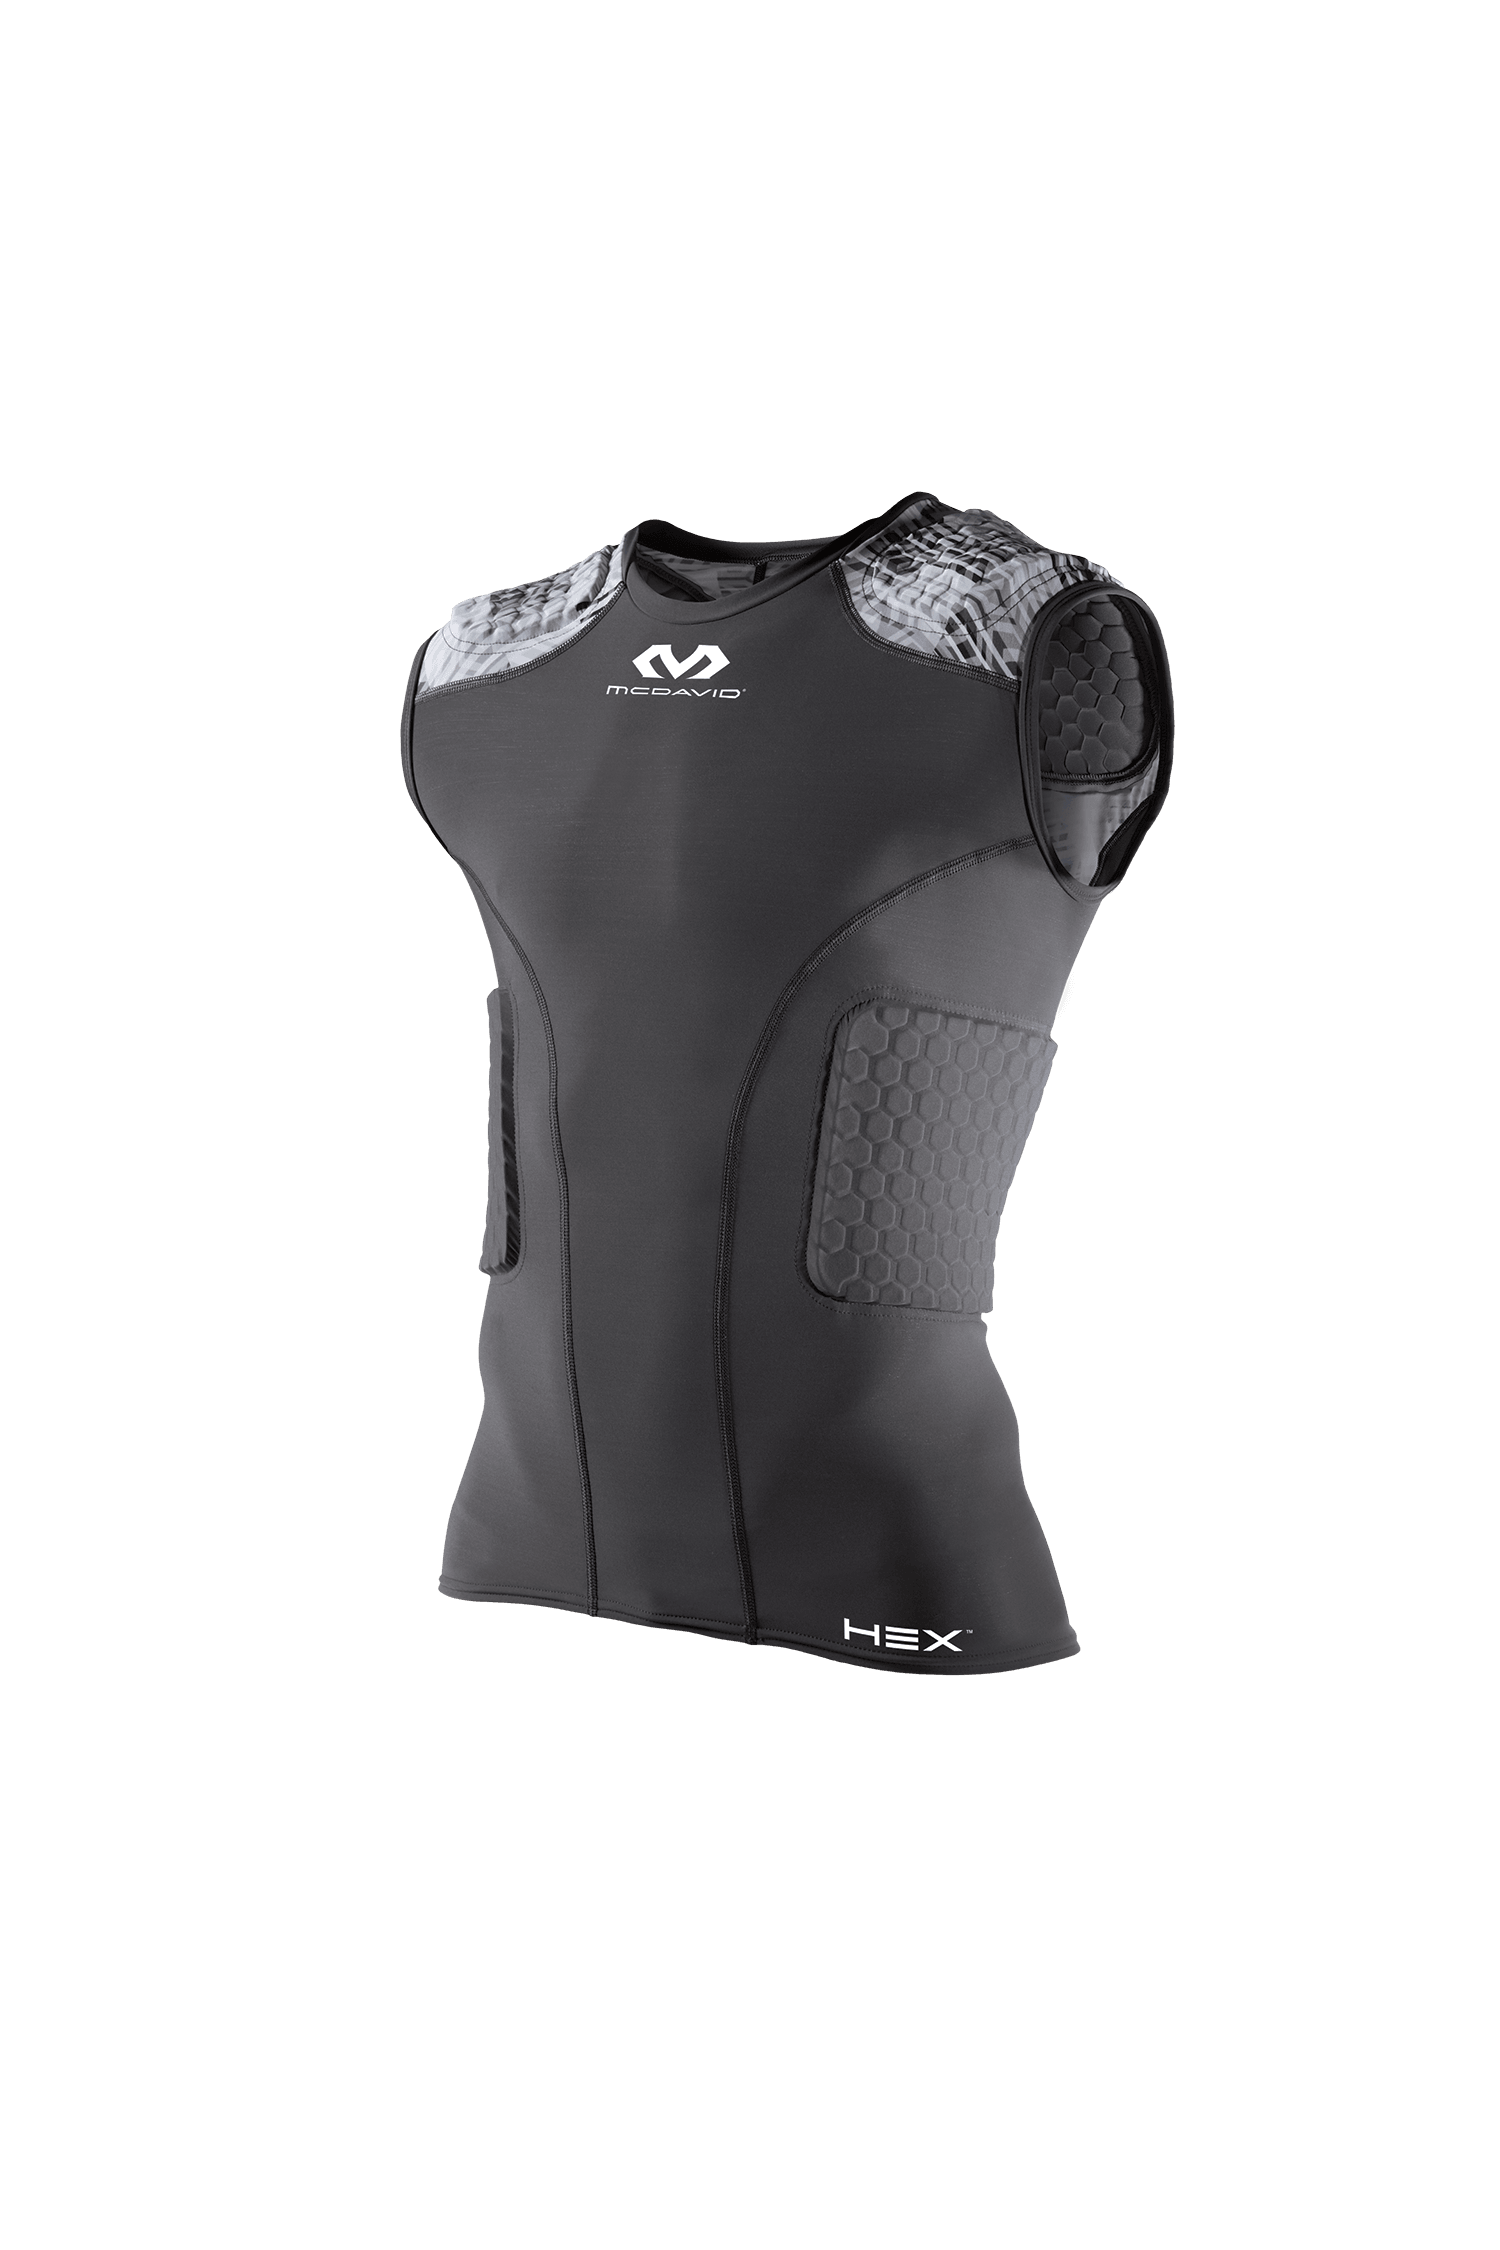 caa0ffe223 McDavid Adult Hex 5-Pad Sleeveless Shirt – League Outfitters